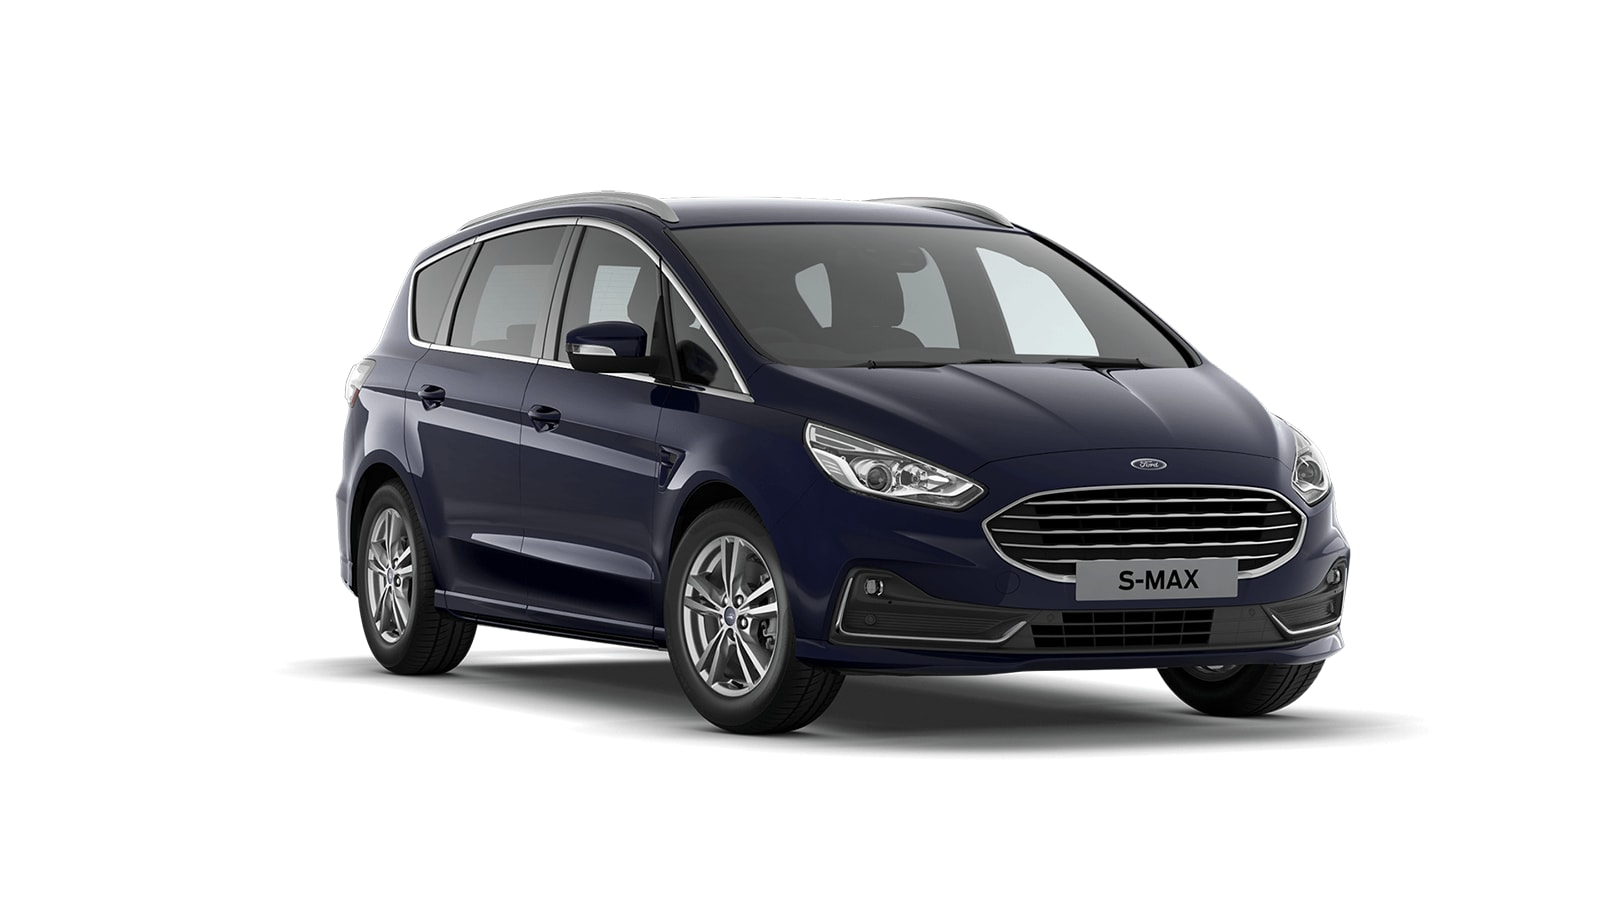 Ford S-MAX at Browne & Day